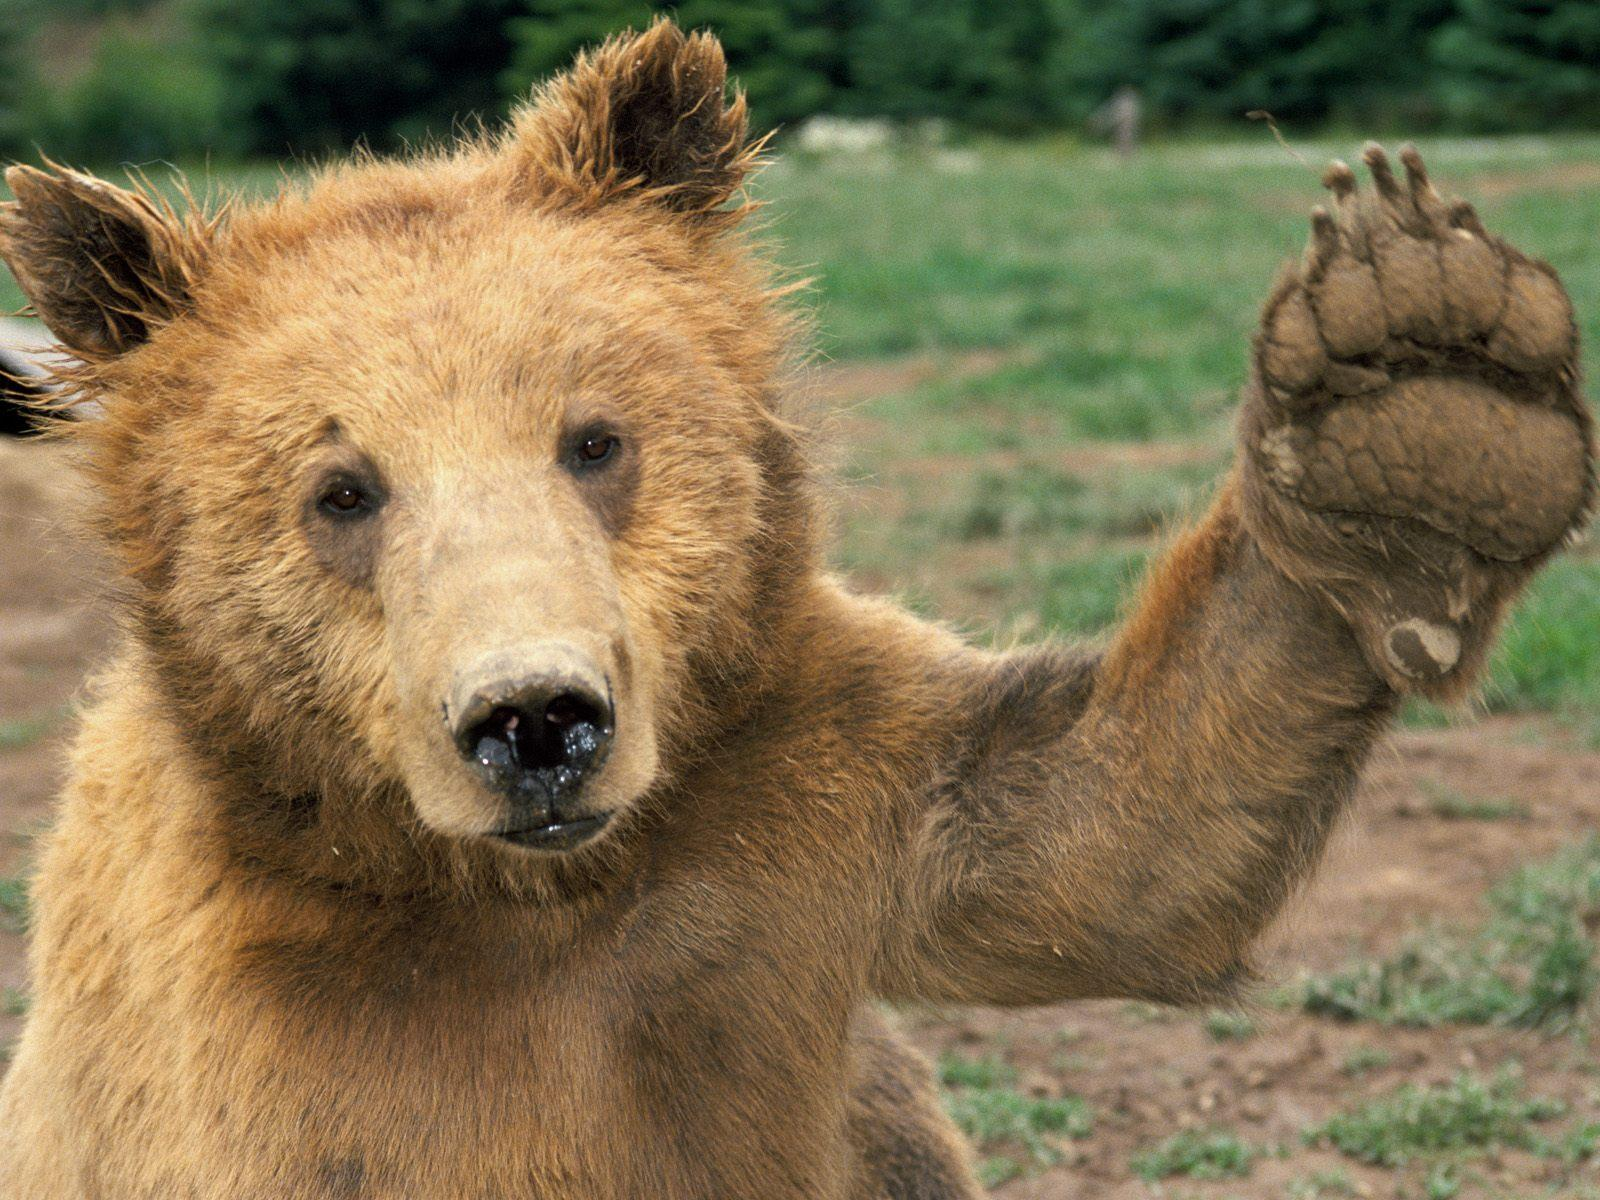 Bear Giving High Five